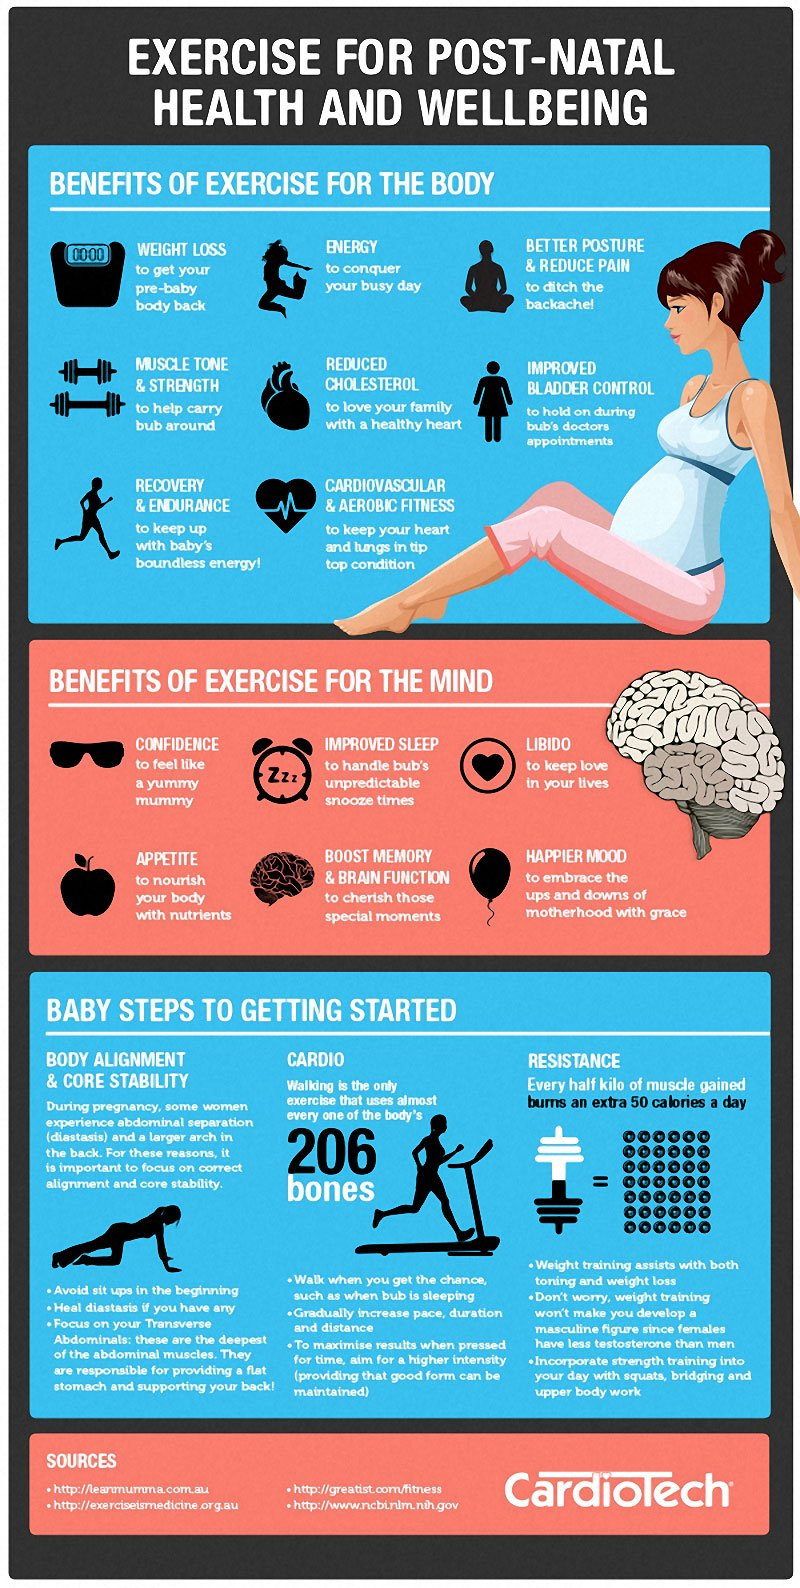 Exercise for Post Natal Health and Wellbeing